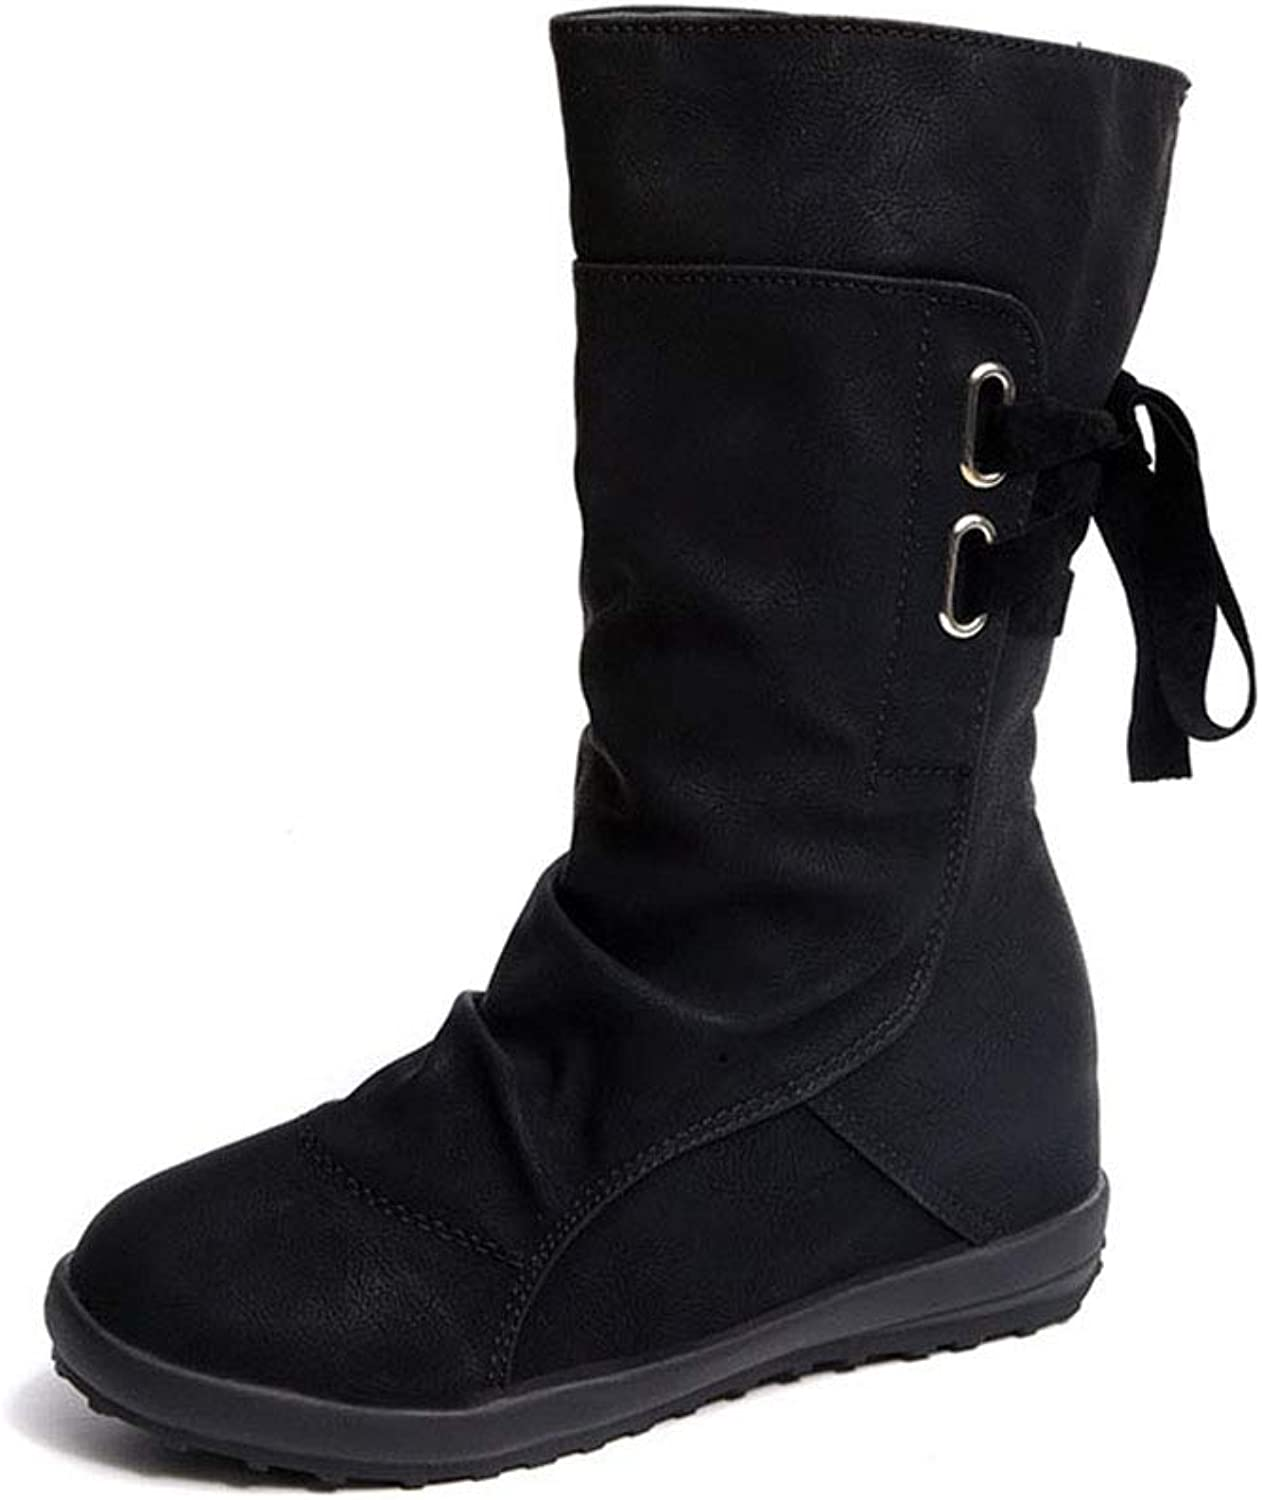 Endand PU Leather Boots Flats Mid Calf Boots Autumn Winter Sexy Snow Boots shoes for Woman Fashion Lace Up Boots